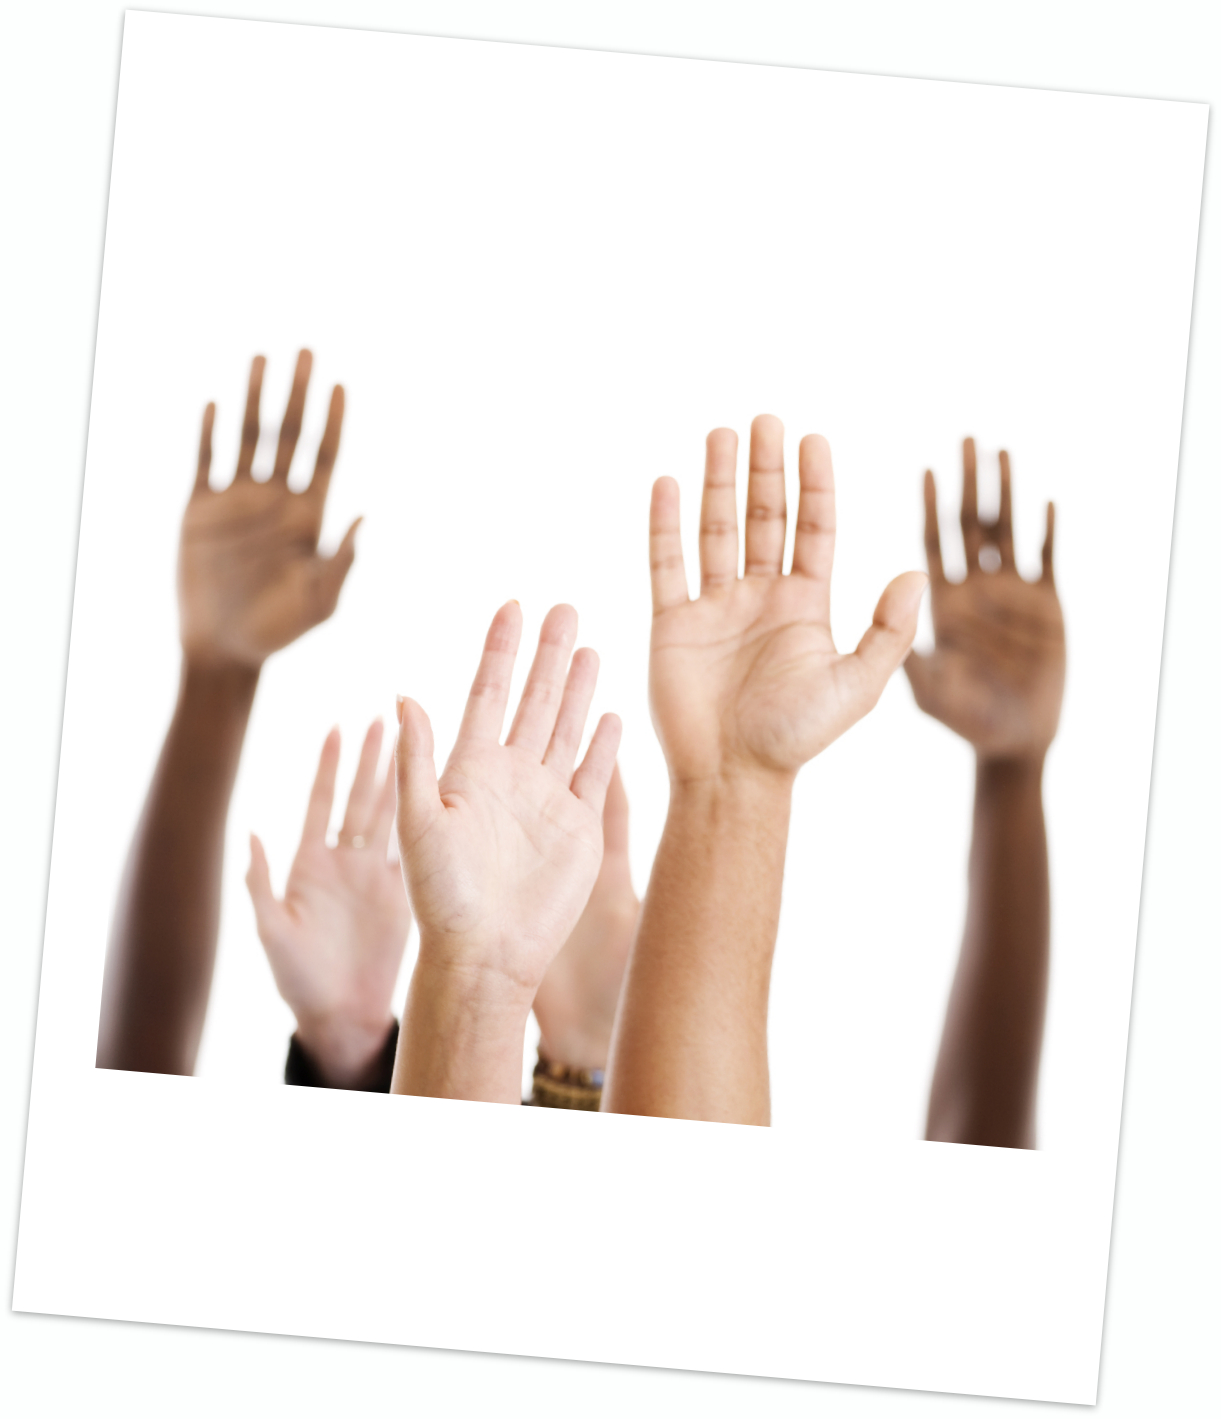 Photo of hands in air